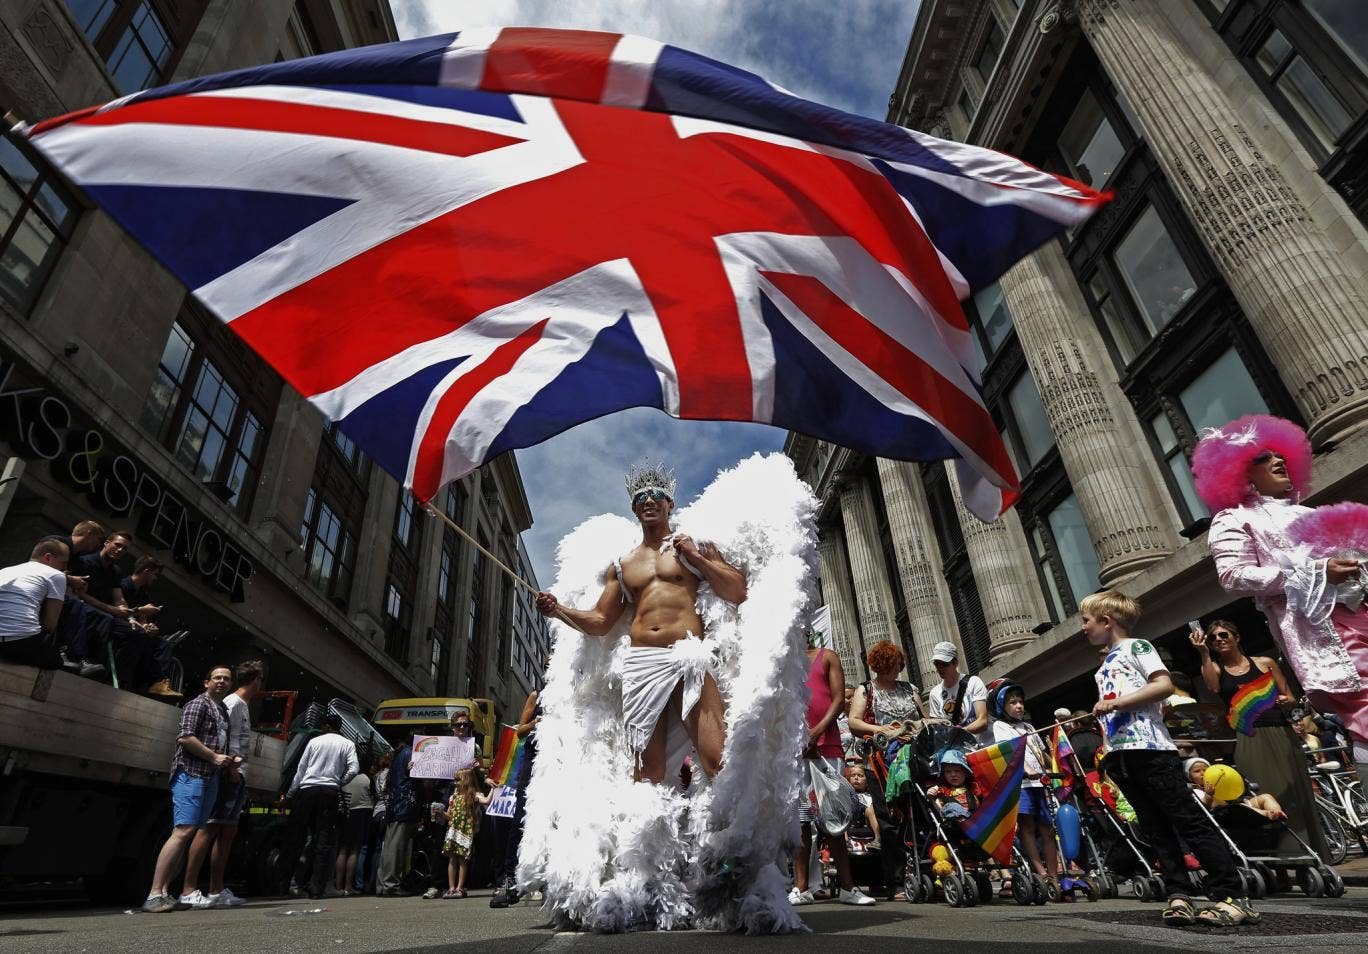 A member of the Pride parade in 2013 proudly waves the British flag